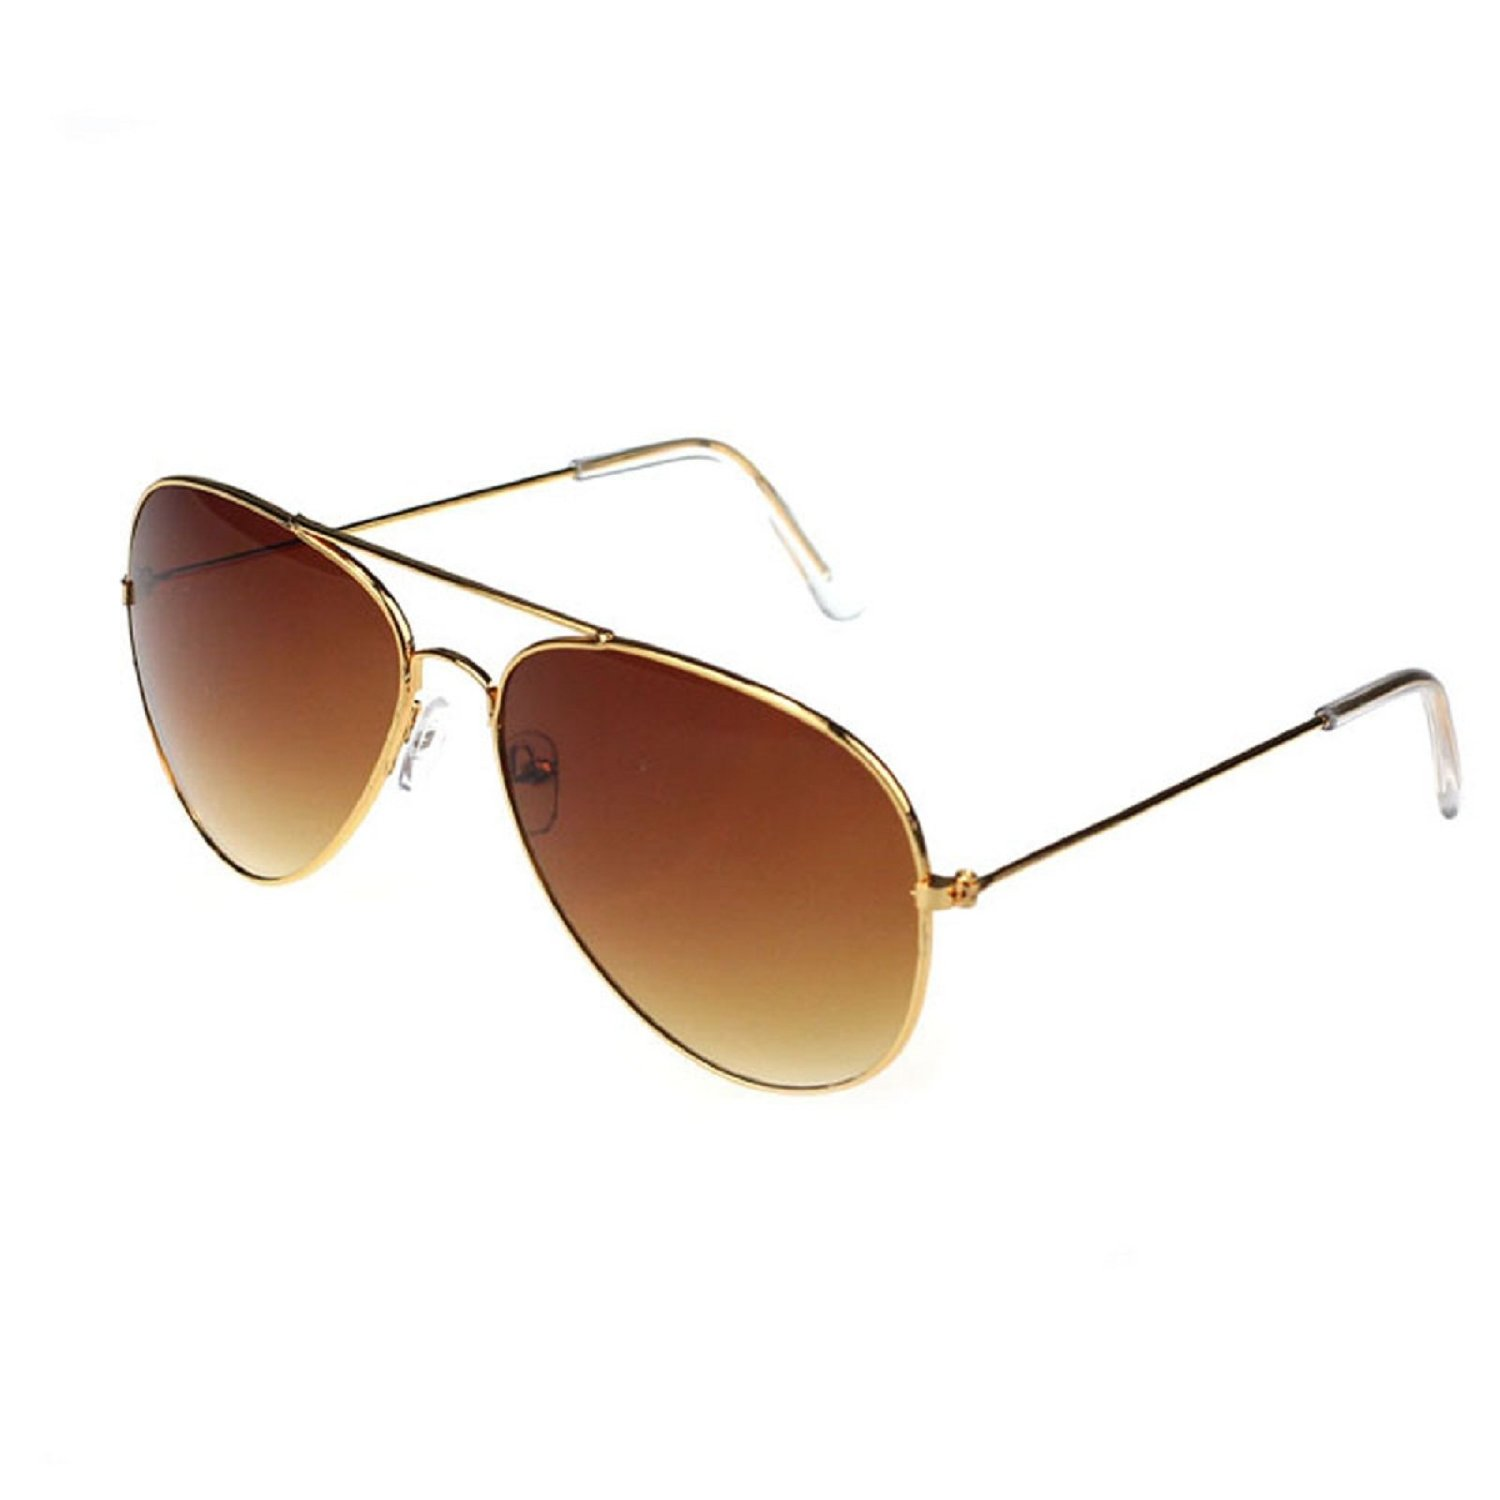 New Fashion Designer Classic Aviator Metal Sunglasses